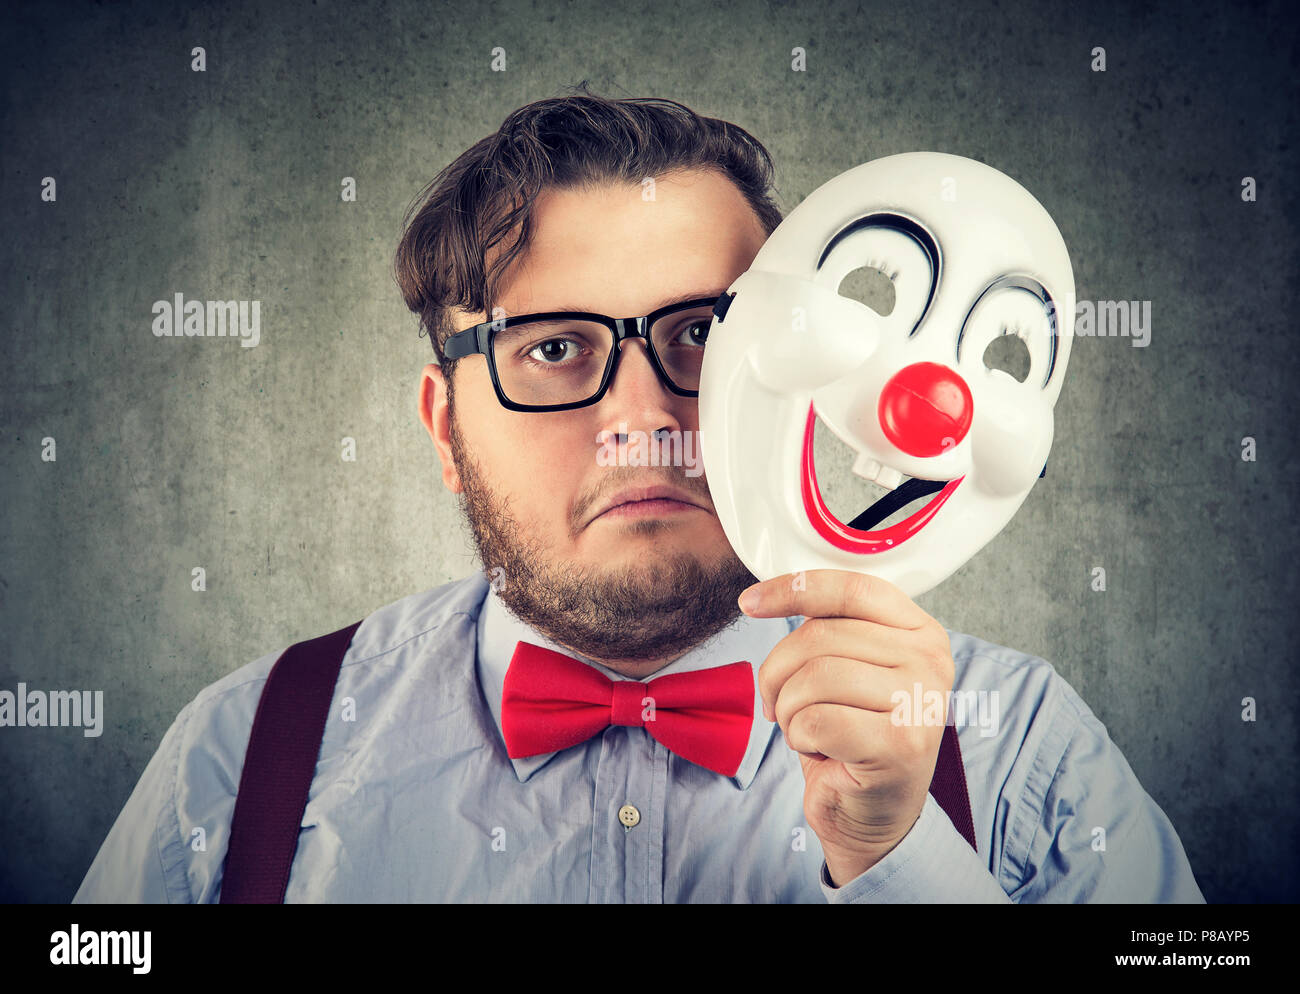 Young bearded man holding happy mask being sad and gloomy while looking at camera on gray background - Stock Image